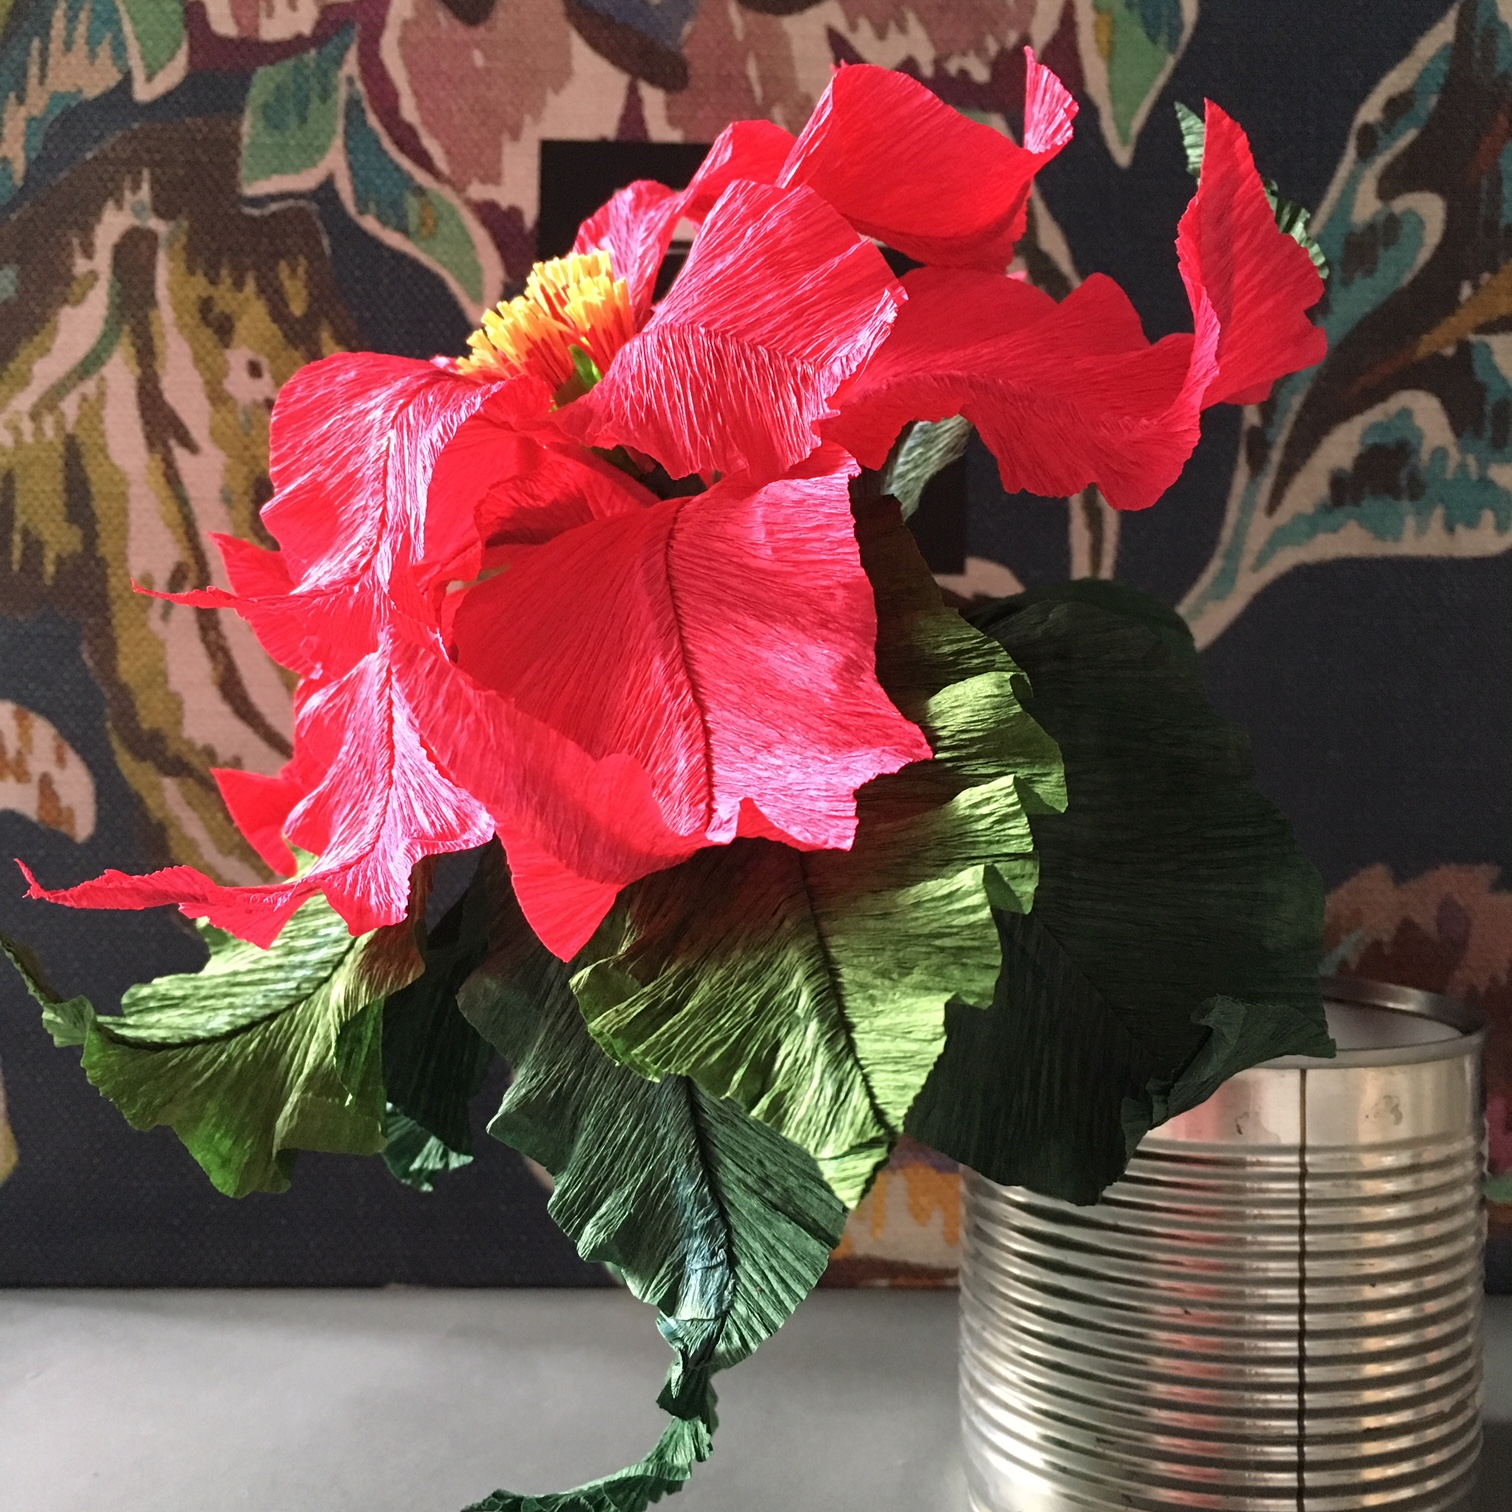 crepe paper Poinsettia in a tin can with floral background